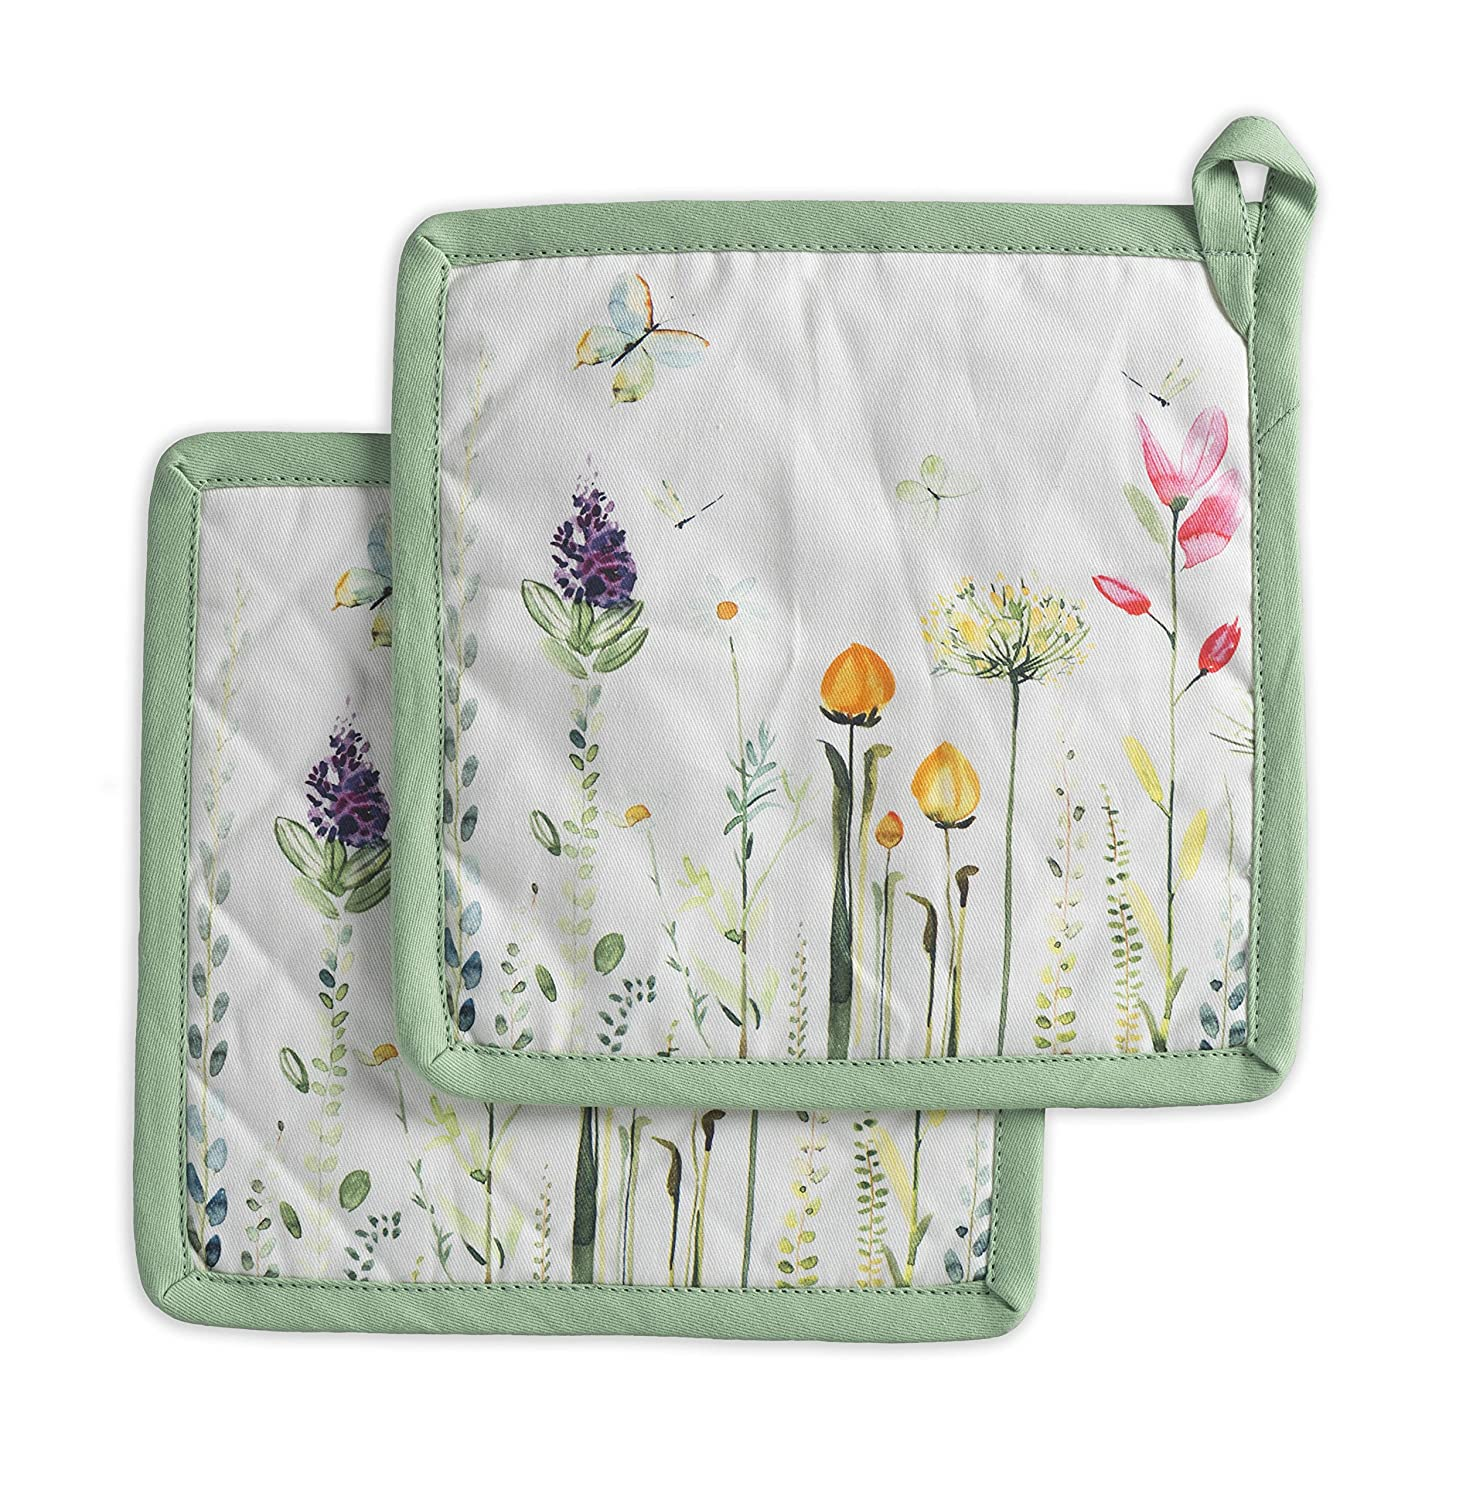 Maison d' Hermine Botanical Fresh 100% Cotton Set of 2 Pot Holders 8 Inch by 8 Inch Aspero